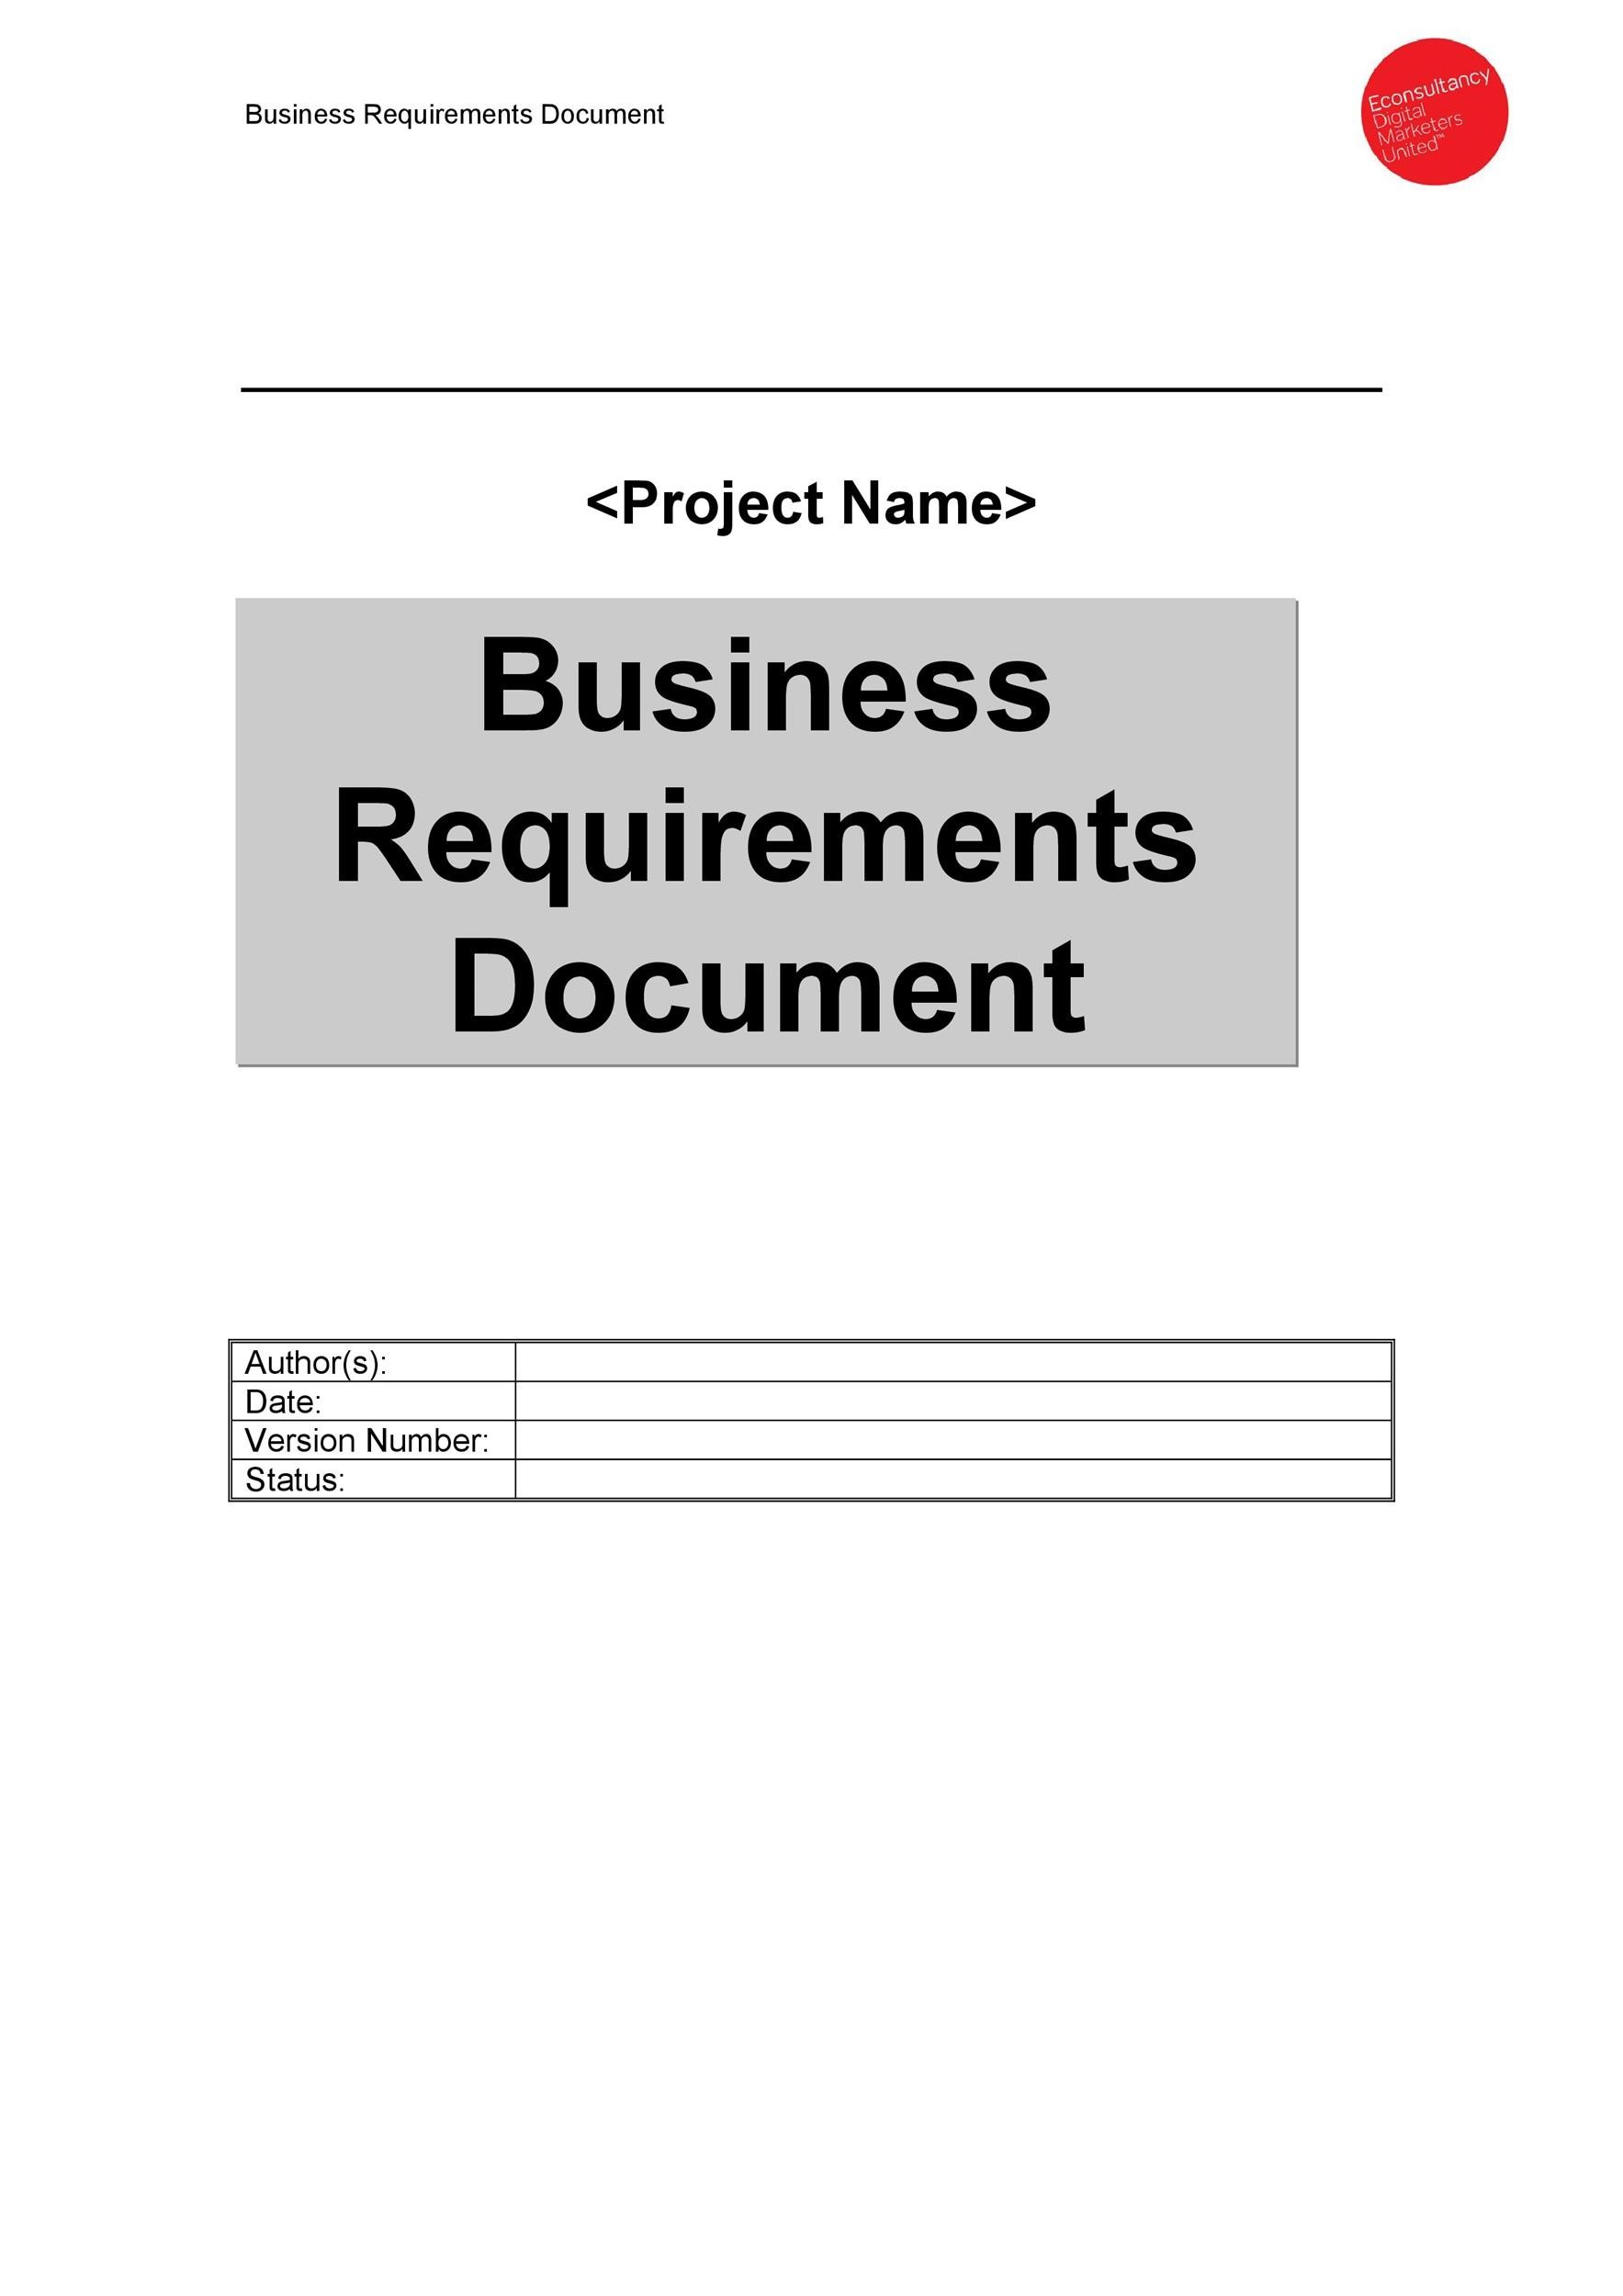 40 simple business requirements document templates template lab free business requirements document template 19 fbccfo Choice Image